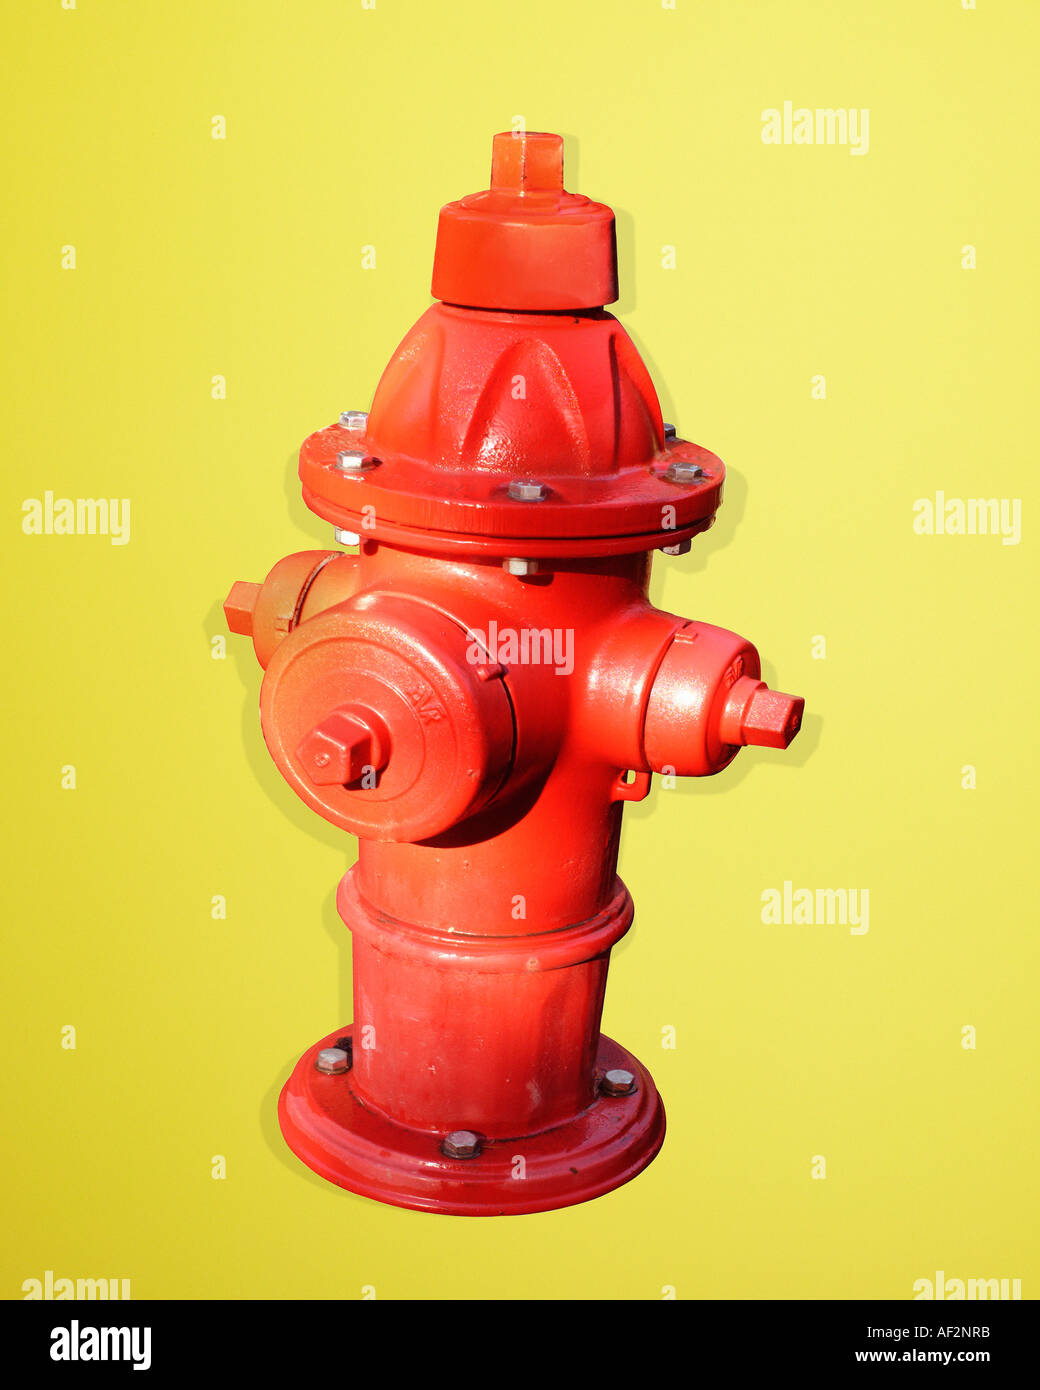 Red Rocket Stock Fire hydrant with clipping path on color background - Stock Image